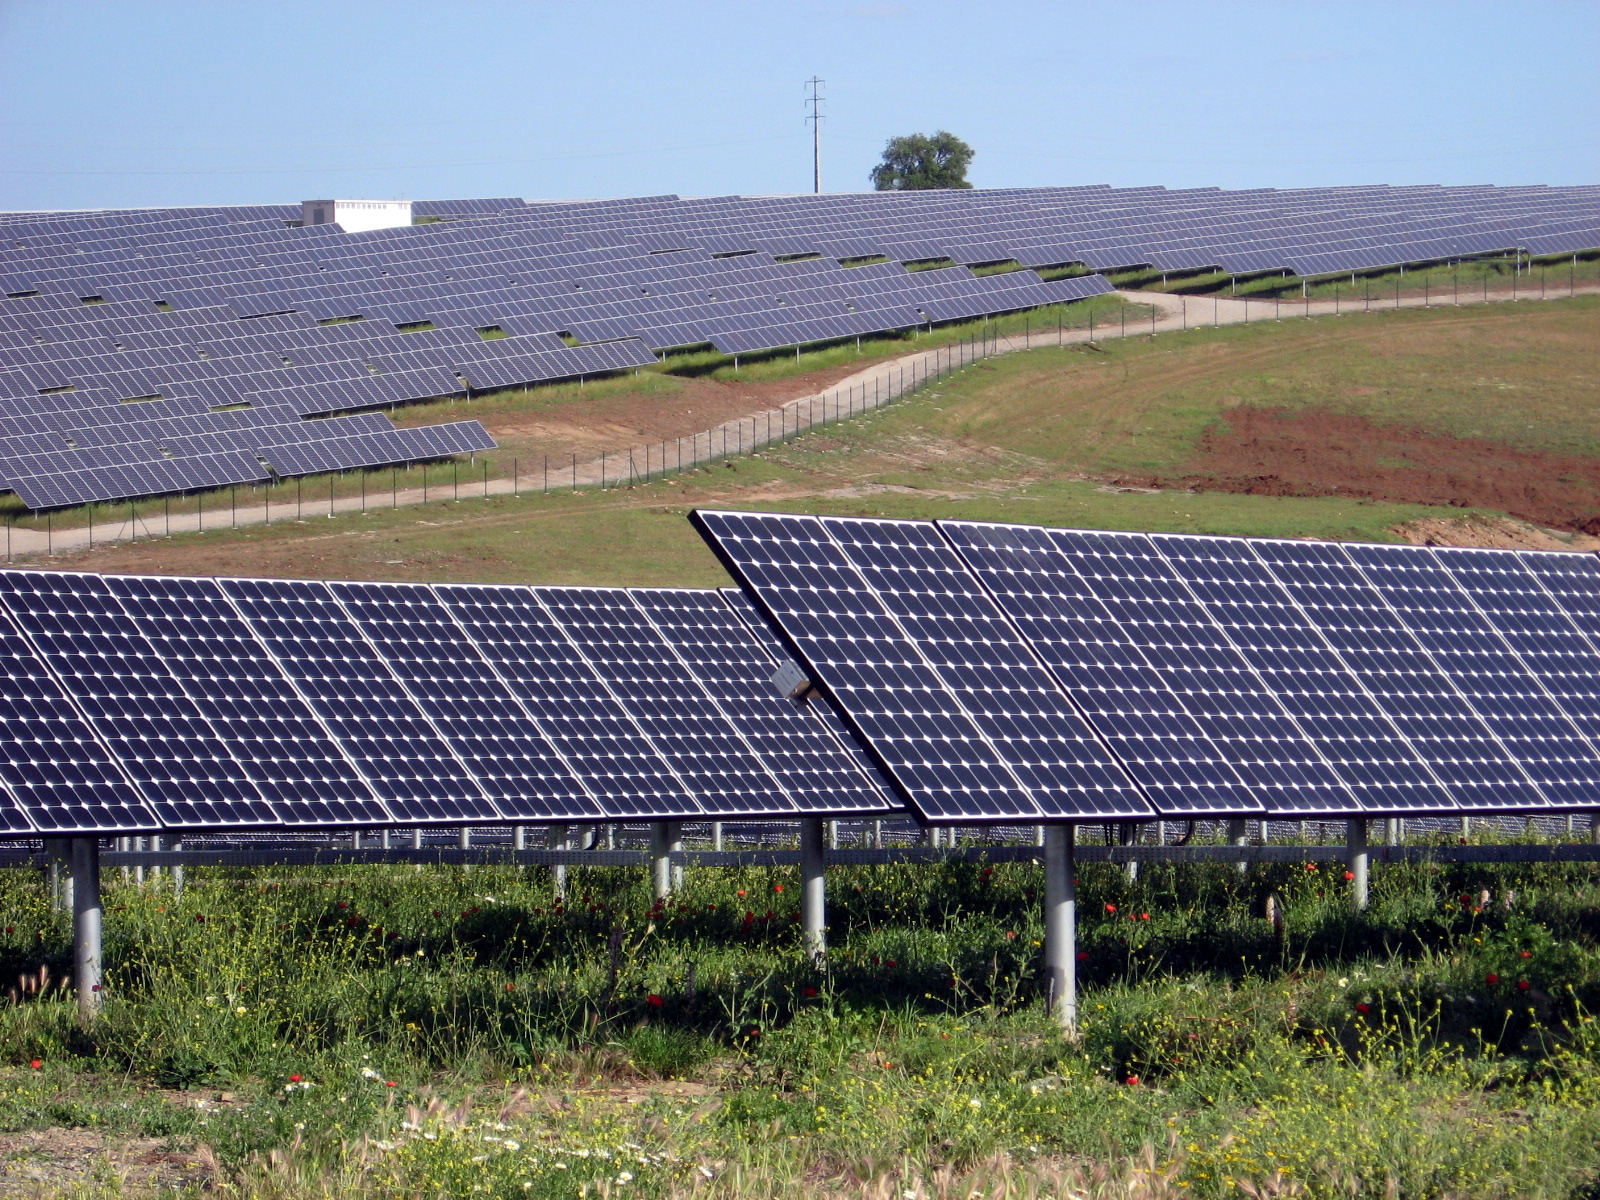 File:SolarPowerPlantSerpa.jpg - Wikipedia, the free encyclopedia